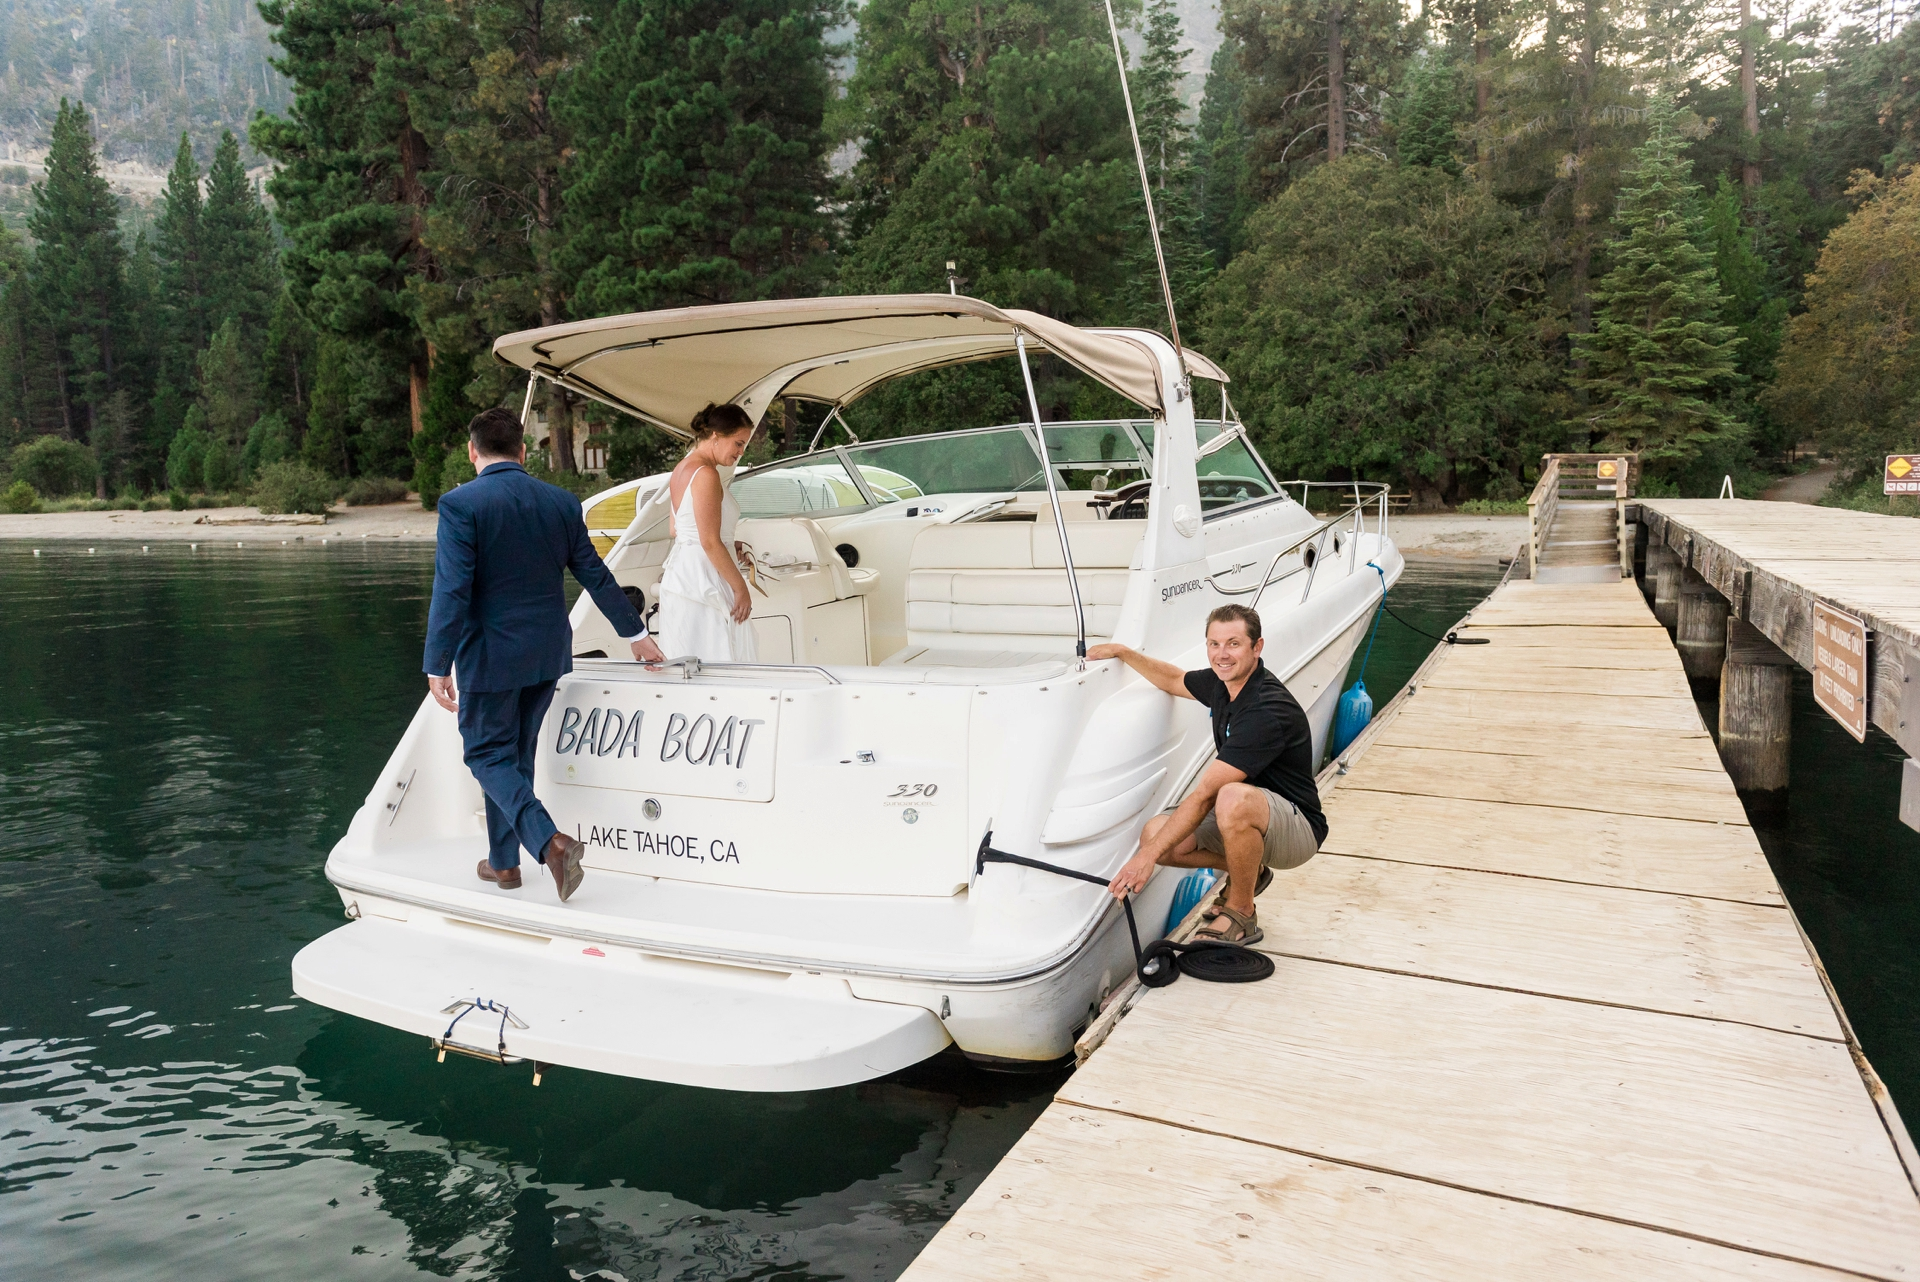 Pic from a Wedding Boat Cruise on Lake Tahoe | The bride and groom reboard the Boda Boat, their Lake Tahoe Boat Rides Charter